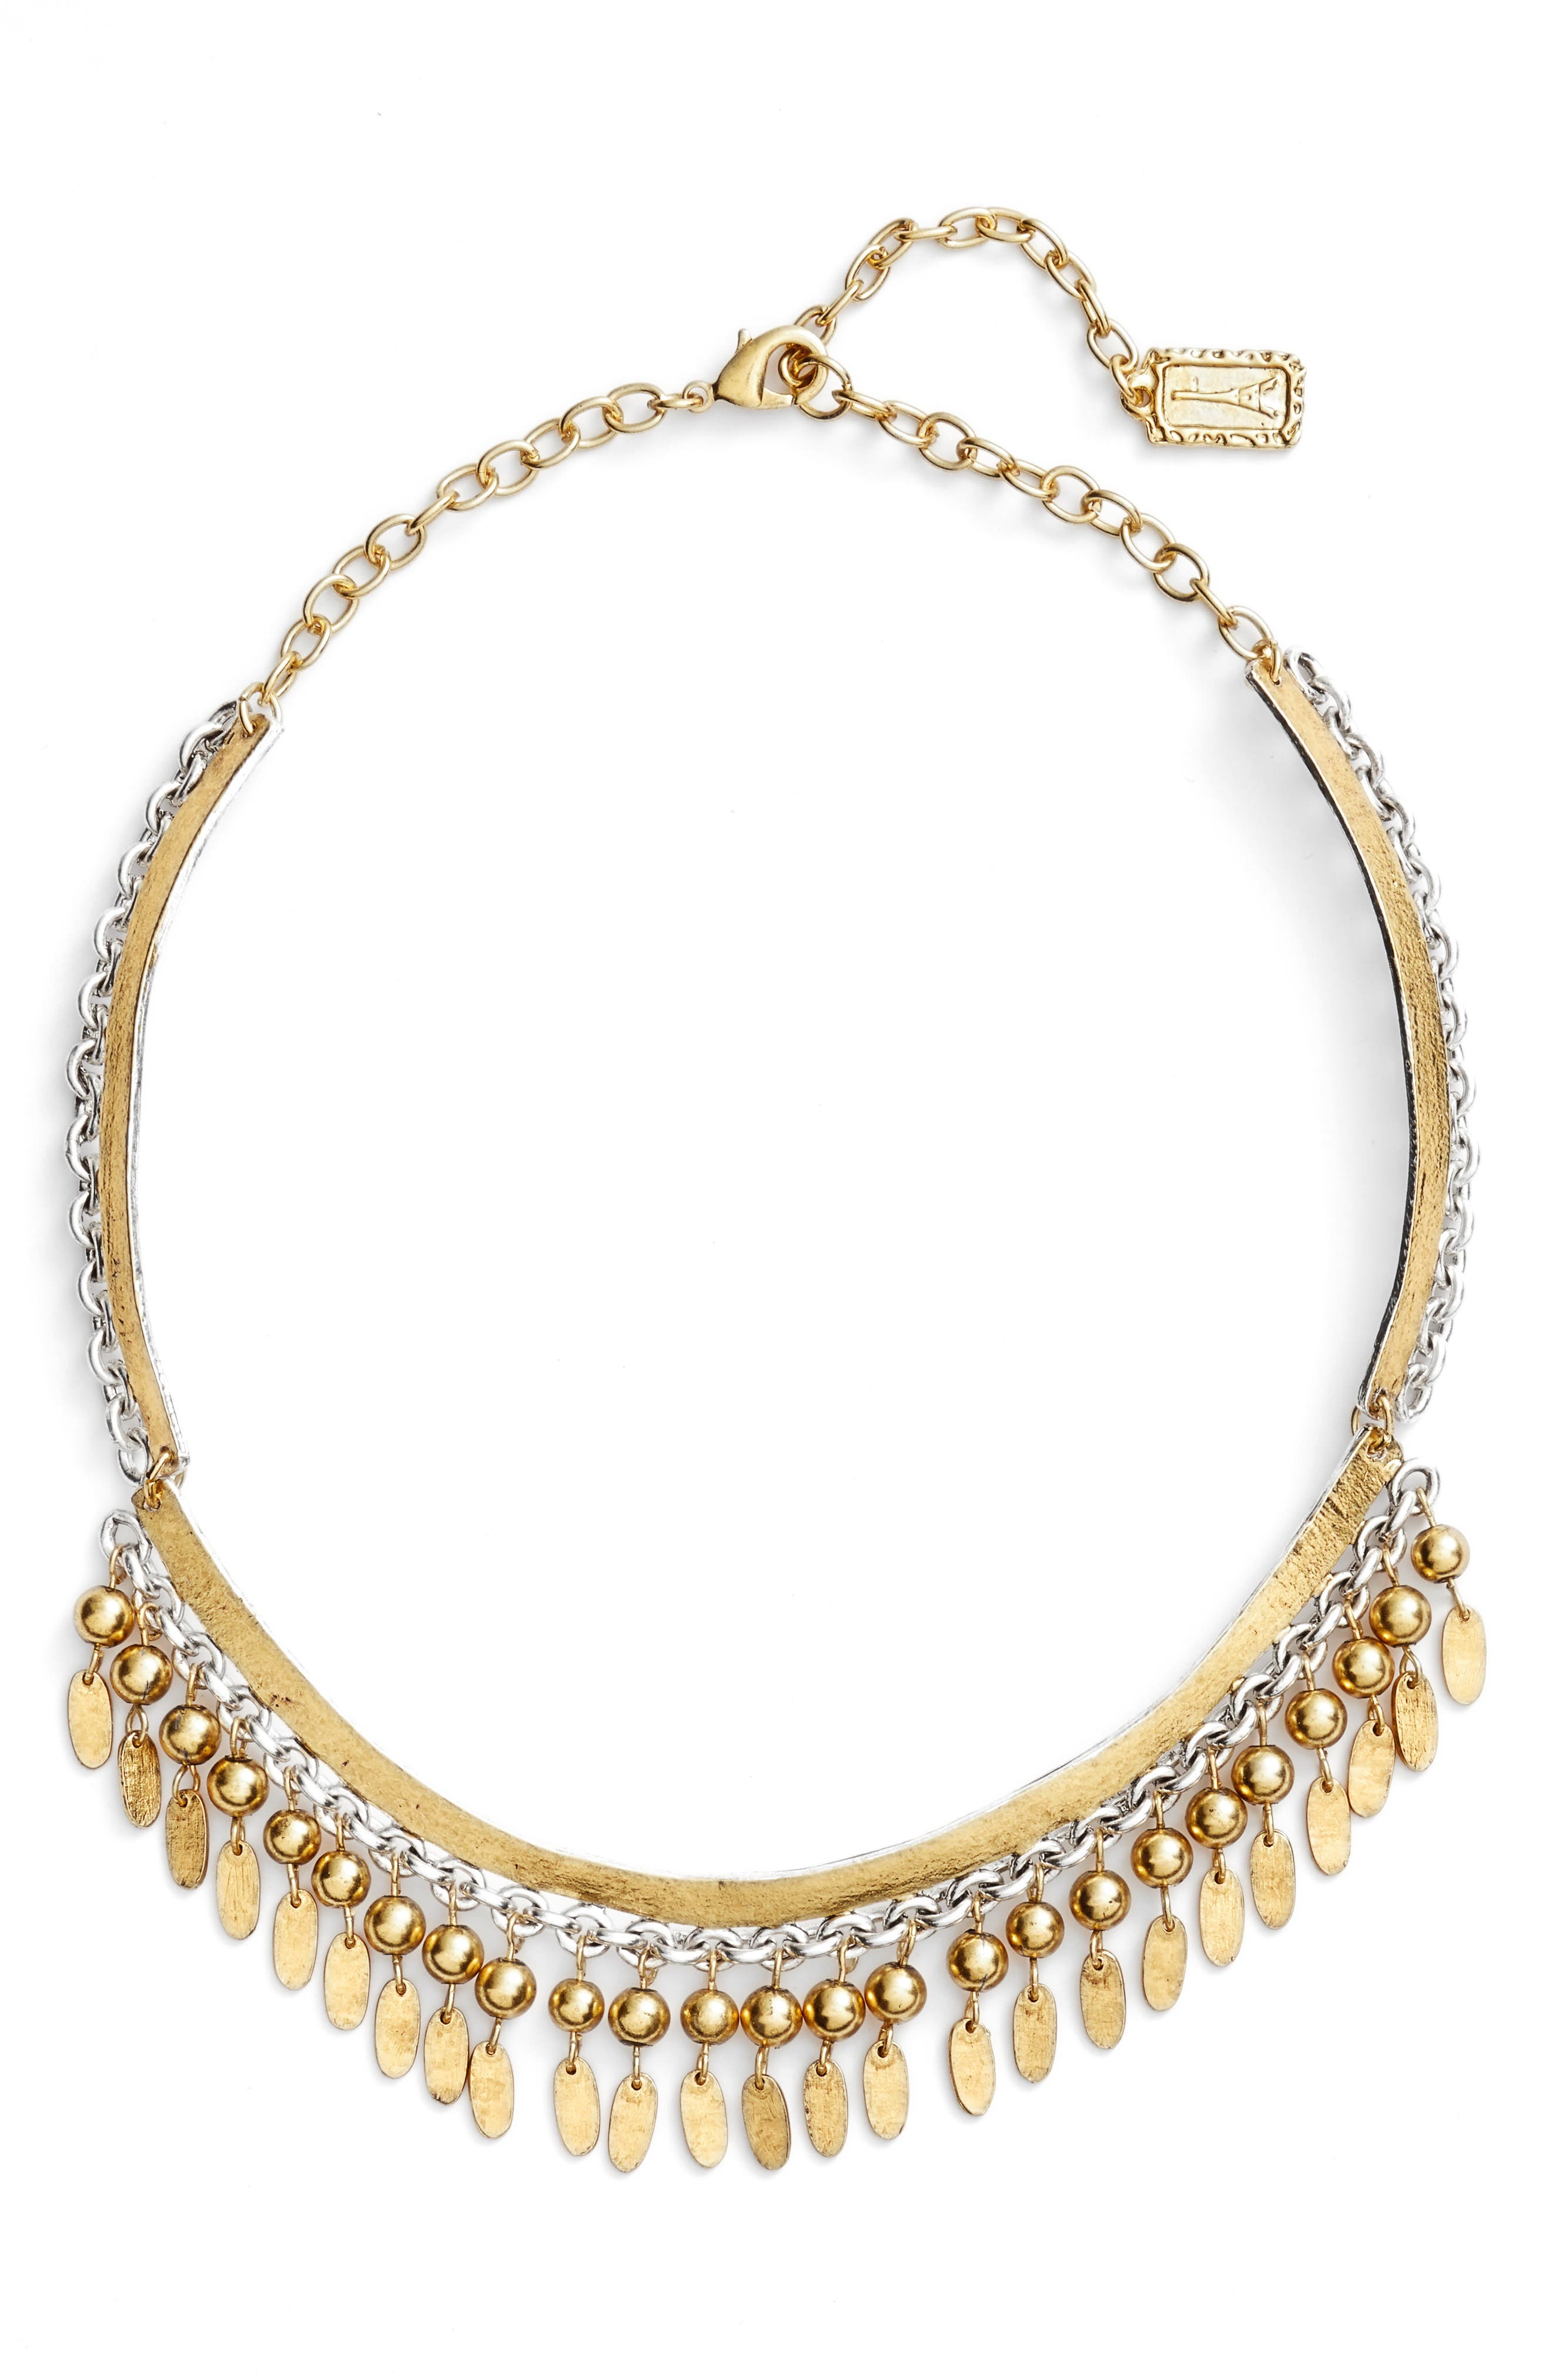 KARINE SULTAN Fringe Collar Necklace